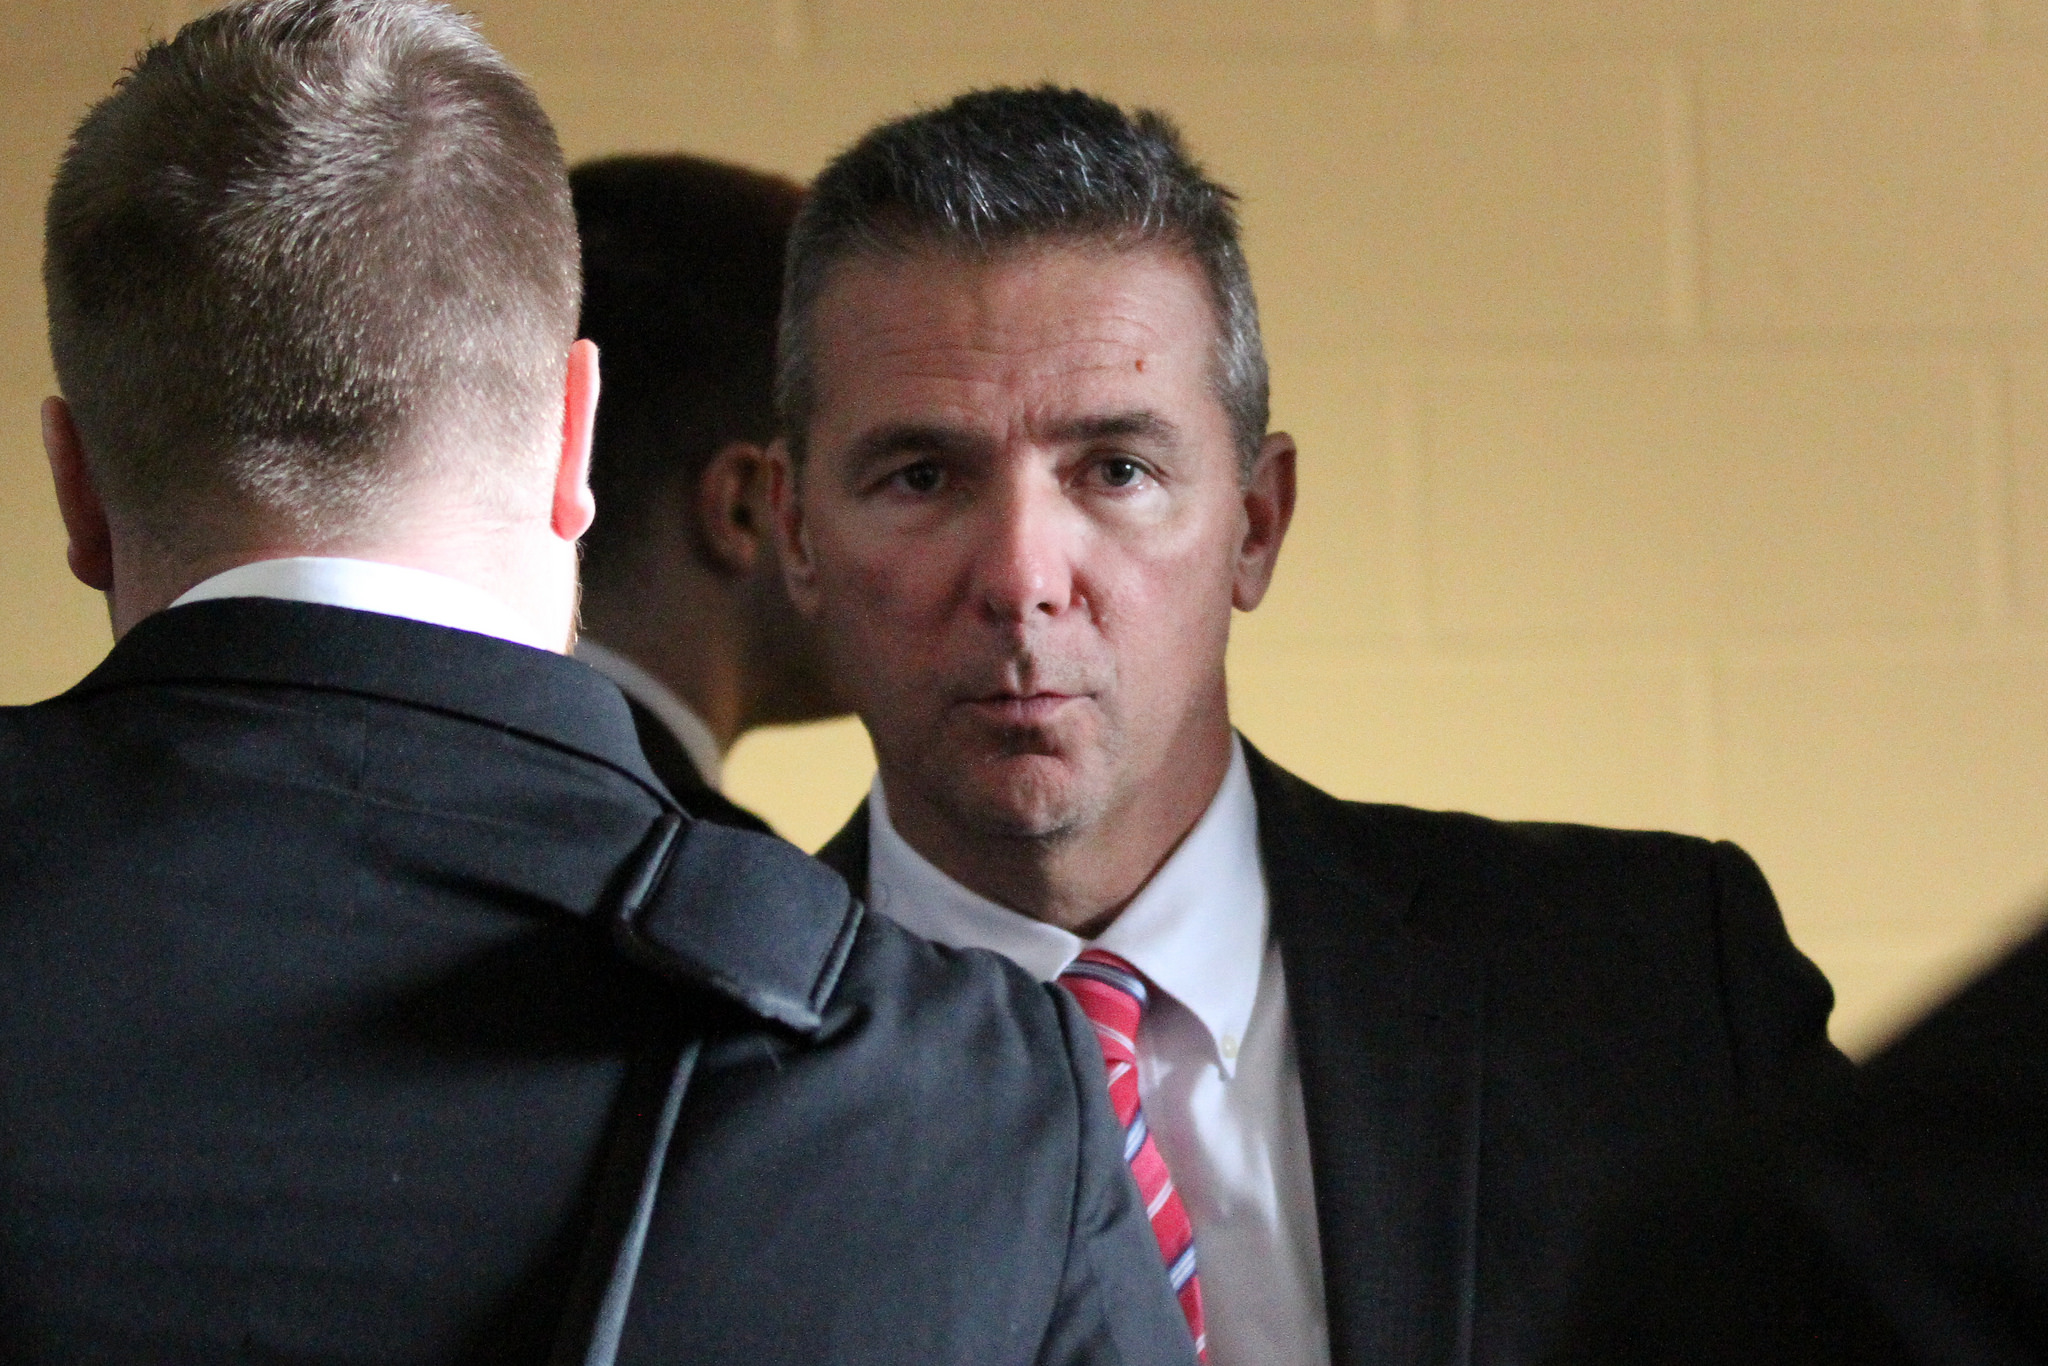 Urban Meyer: 'I am confident that I took appropriate action'